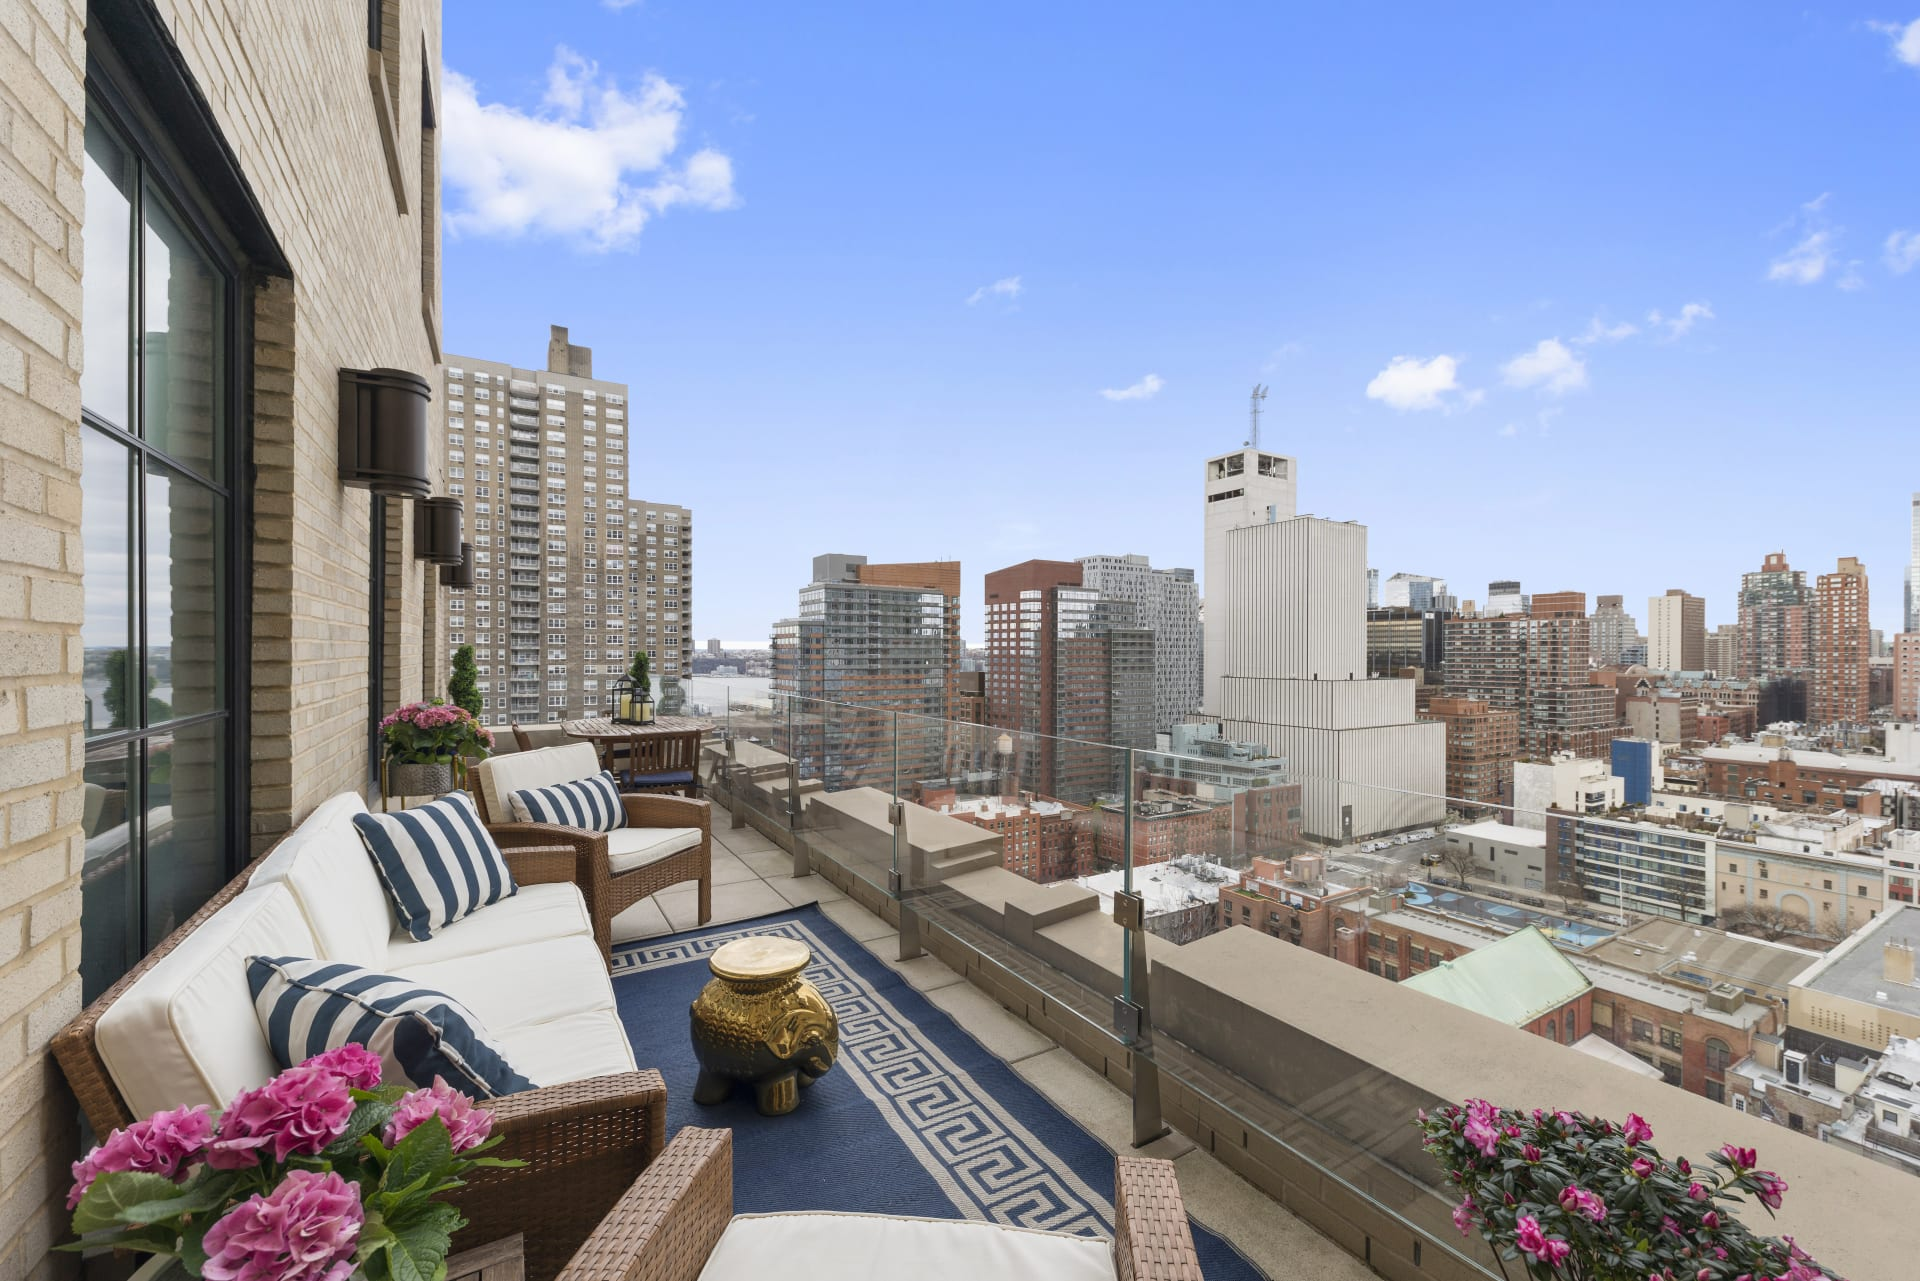 Terrace Lover's Dream with Stunning City and River Views!